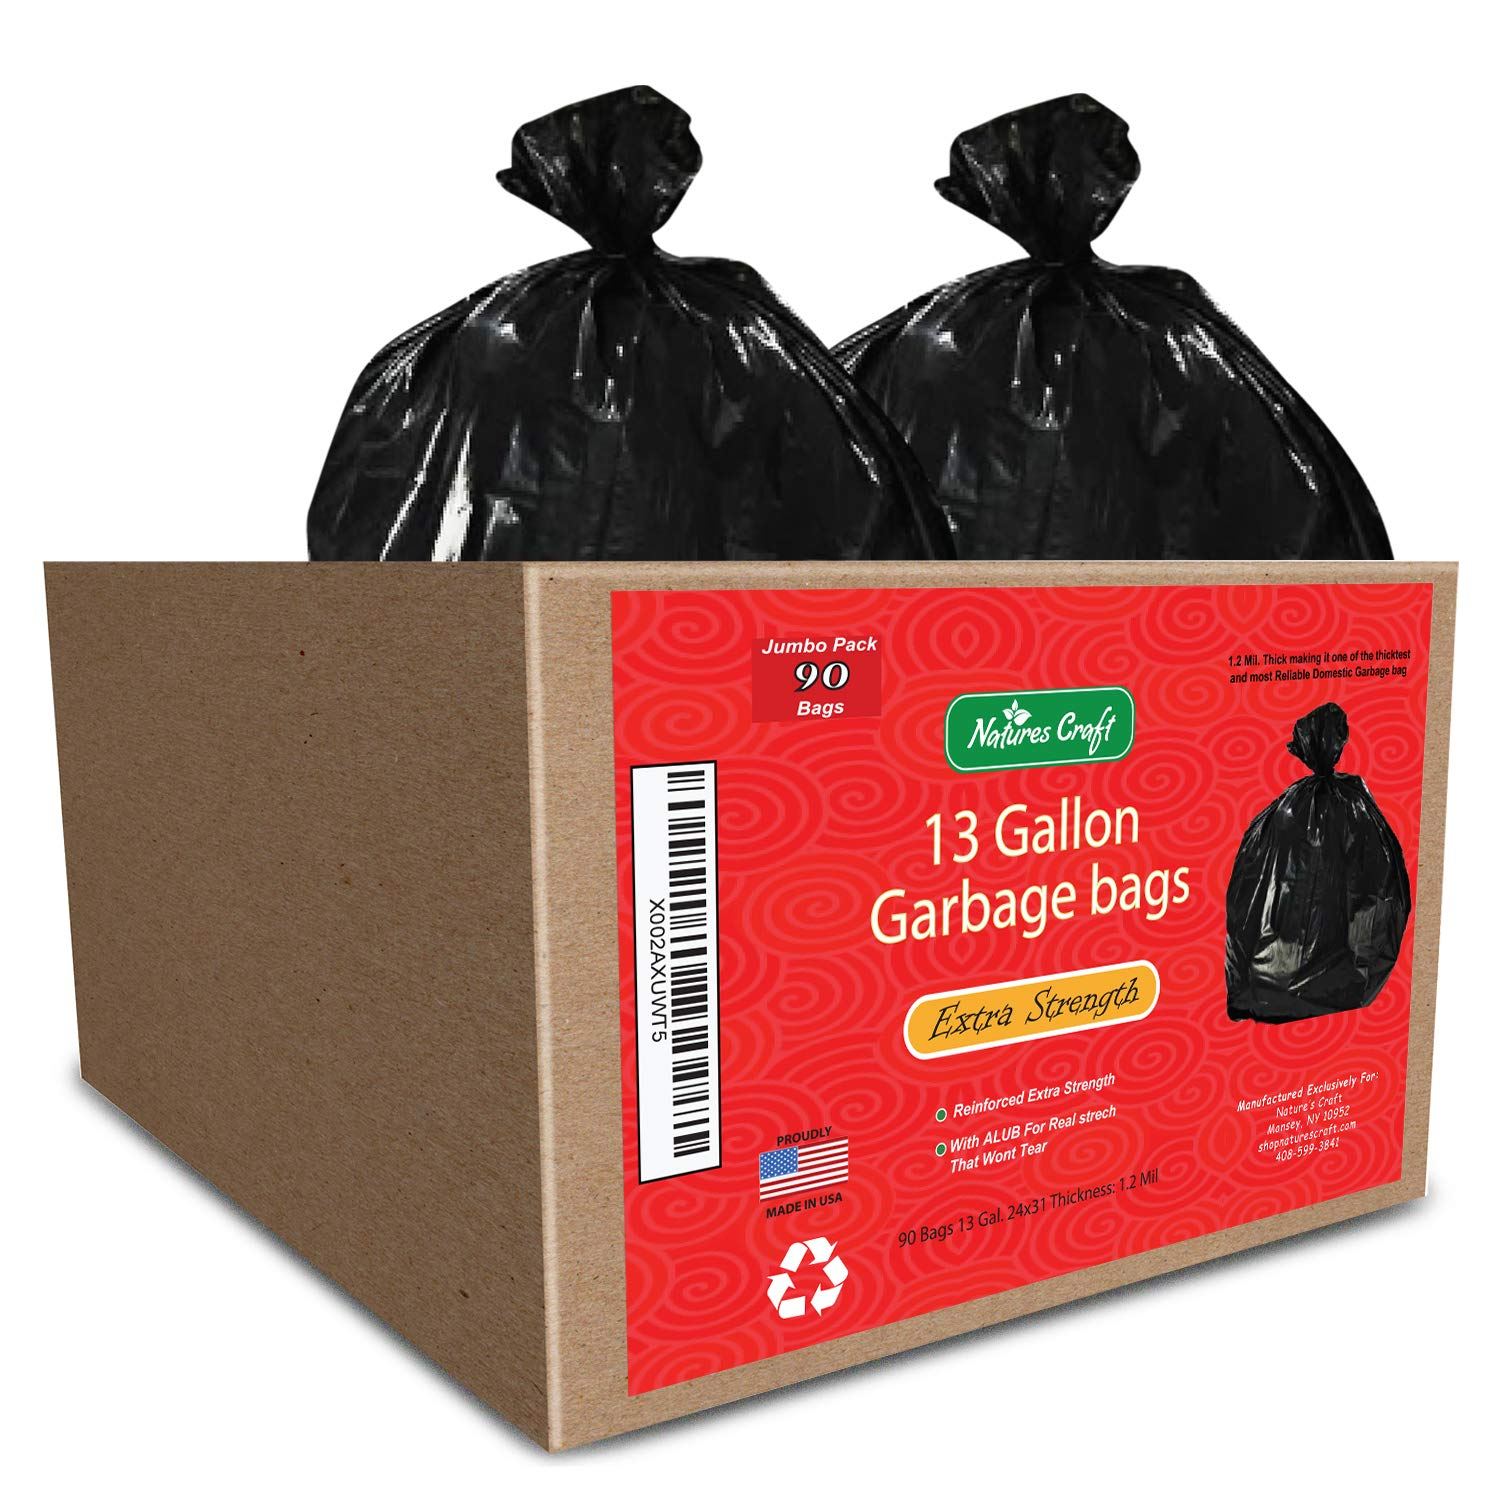 13 gallon Durable Trash Bags - Hefty + Flex - For Kitchen, Cars, Bathroom and Home Use - Rip + Tear Resistant - USA made by California Products product image